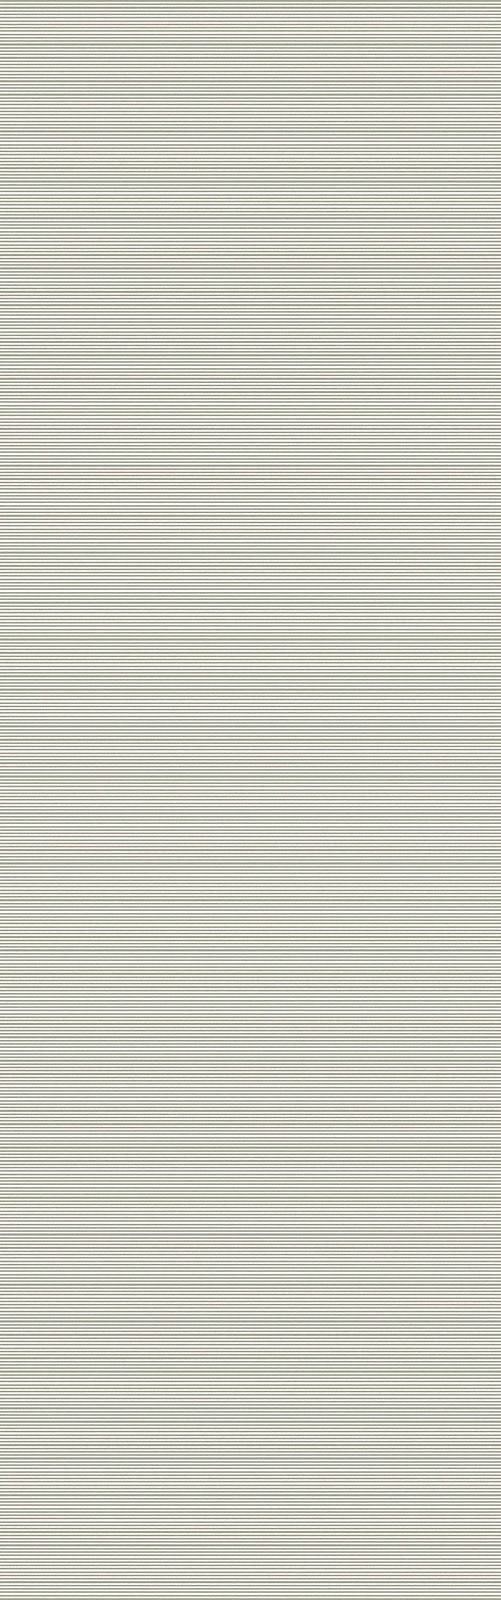 surya pipton solid/striped area rug collection